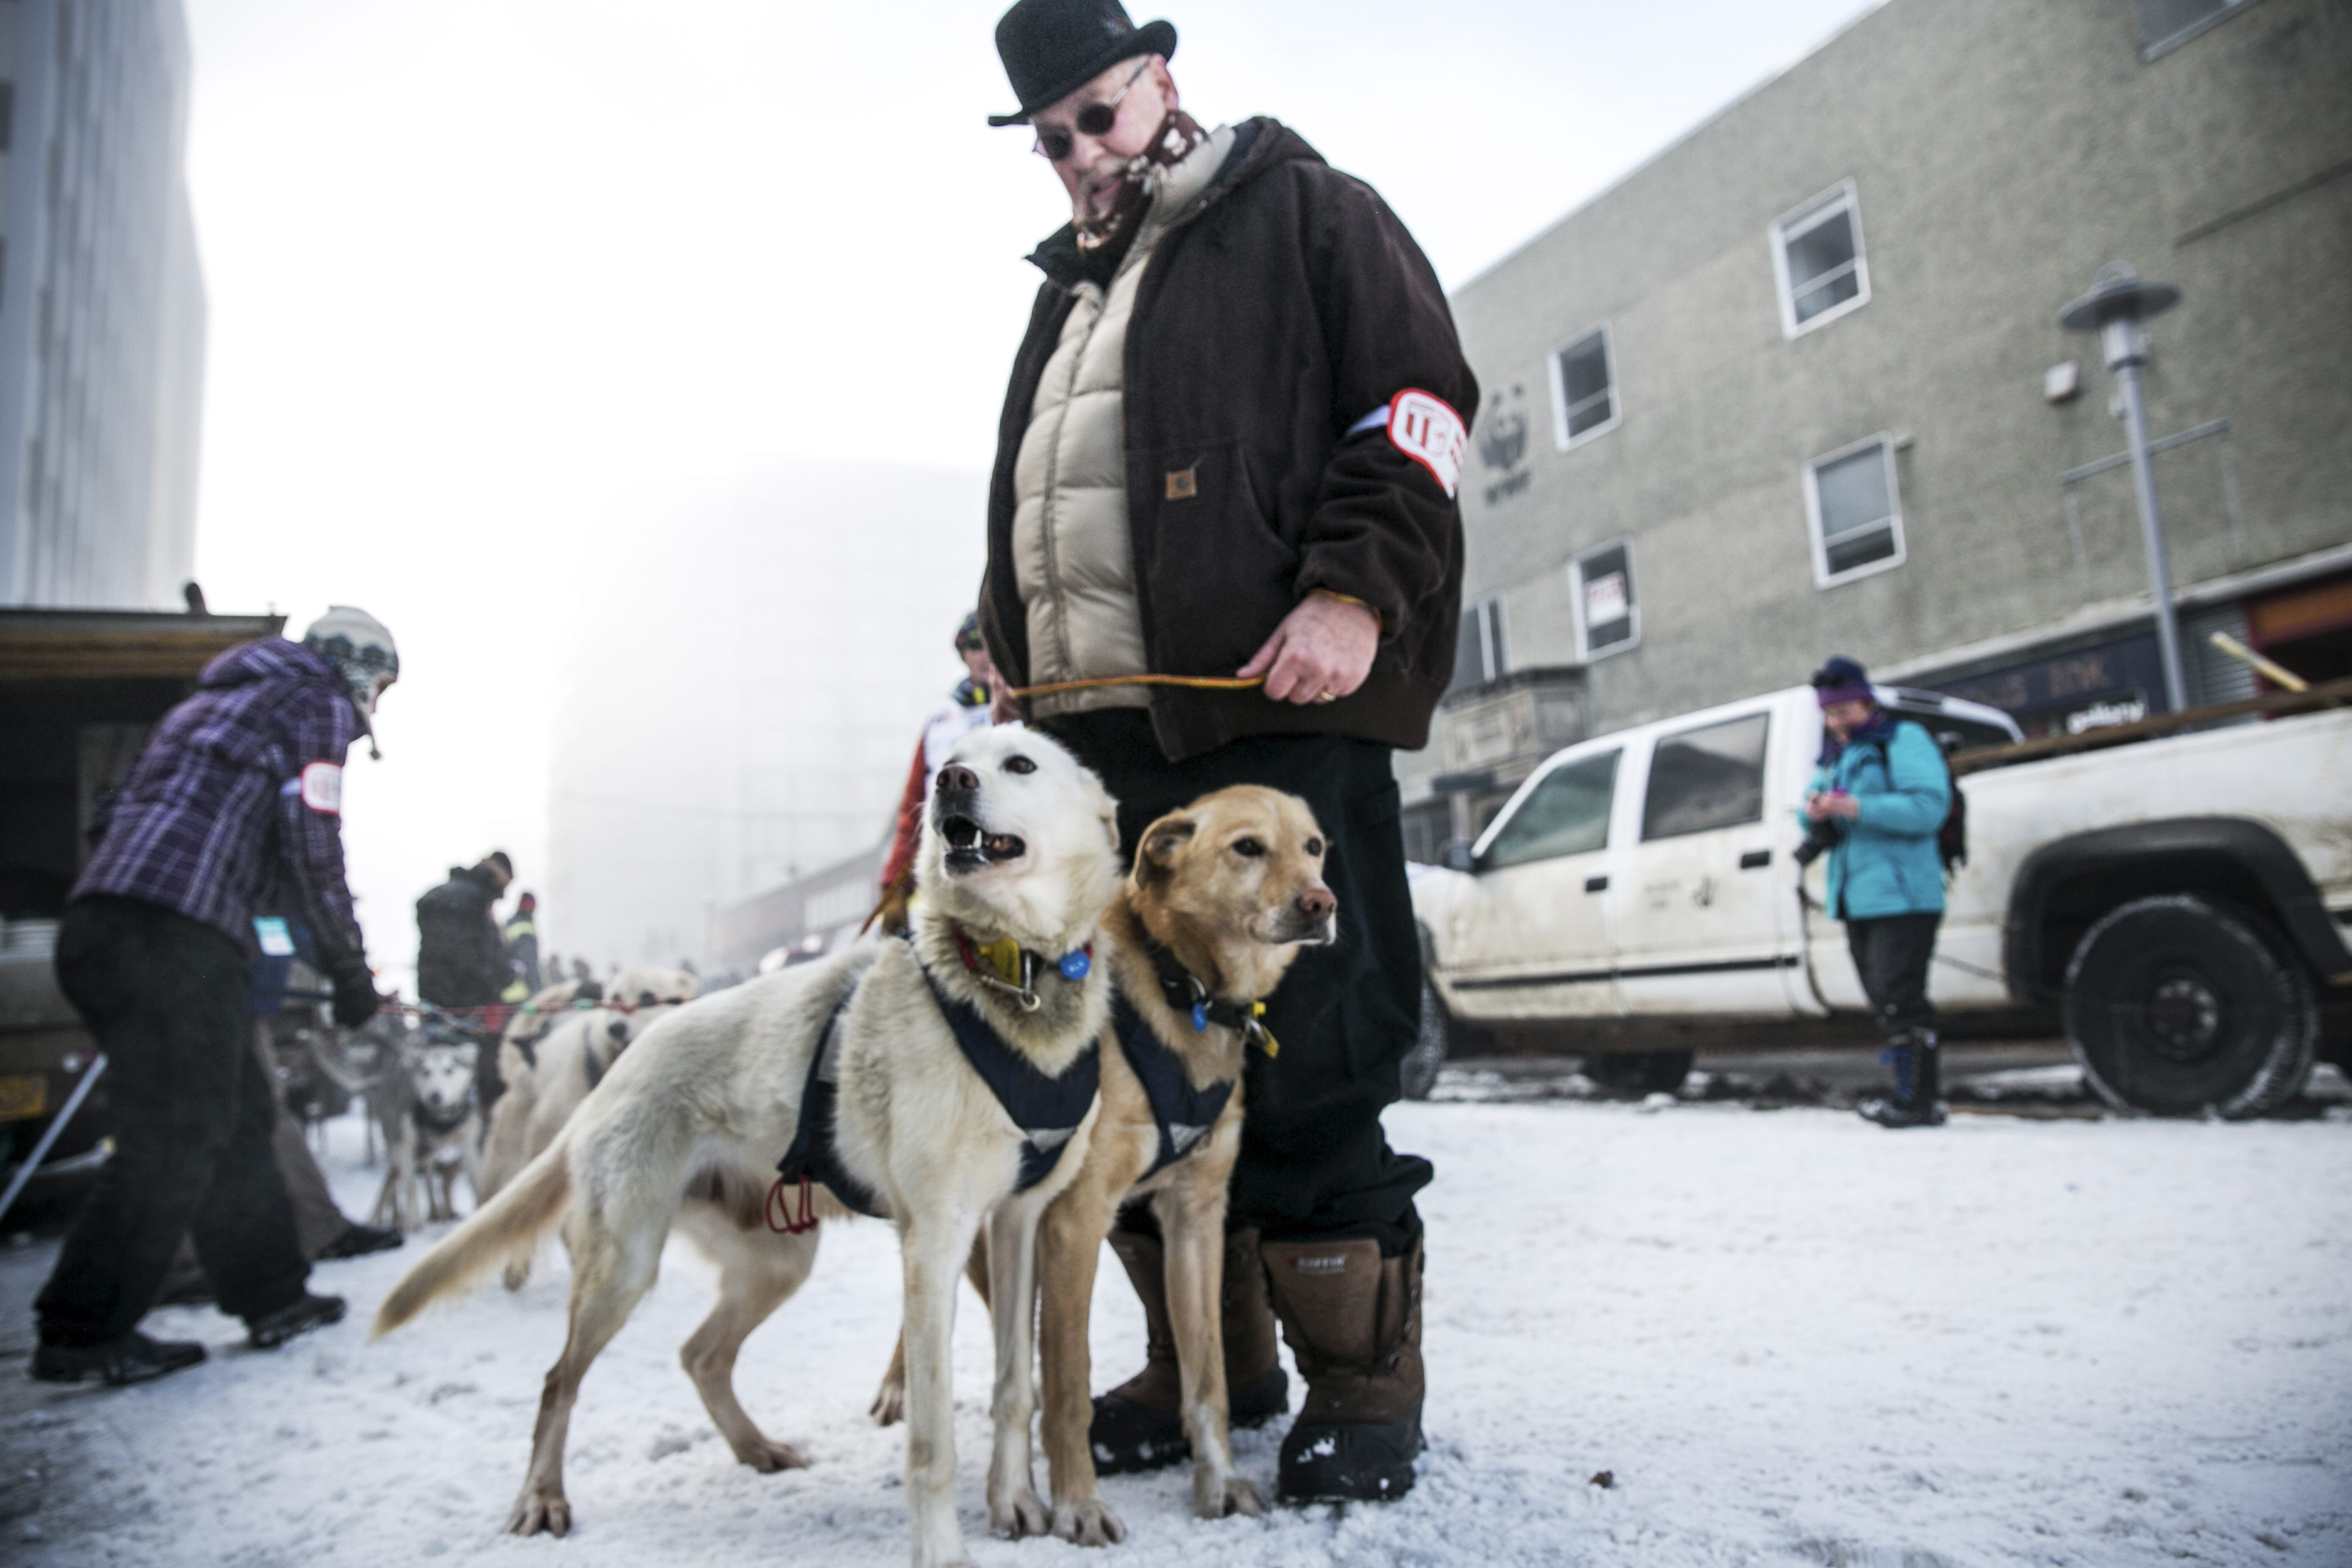 Dallas Seavey unseats his father as champion in the 2014 Alaskan Iditarod